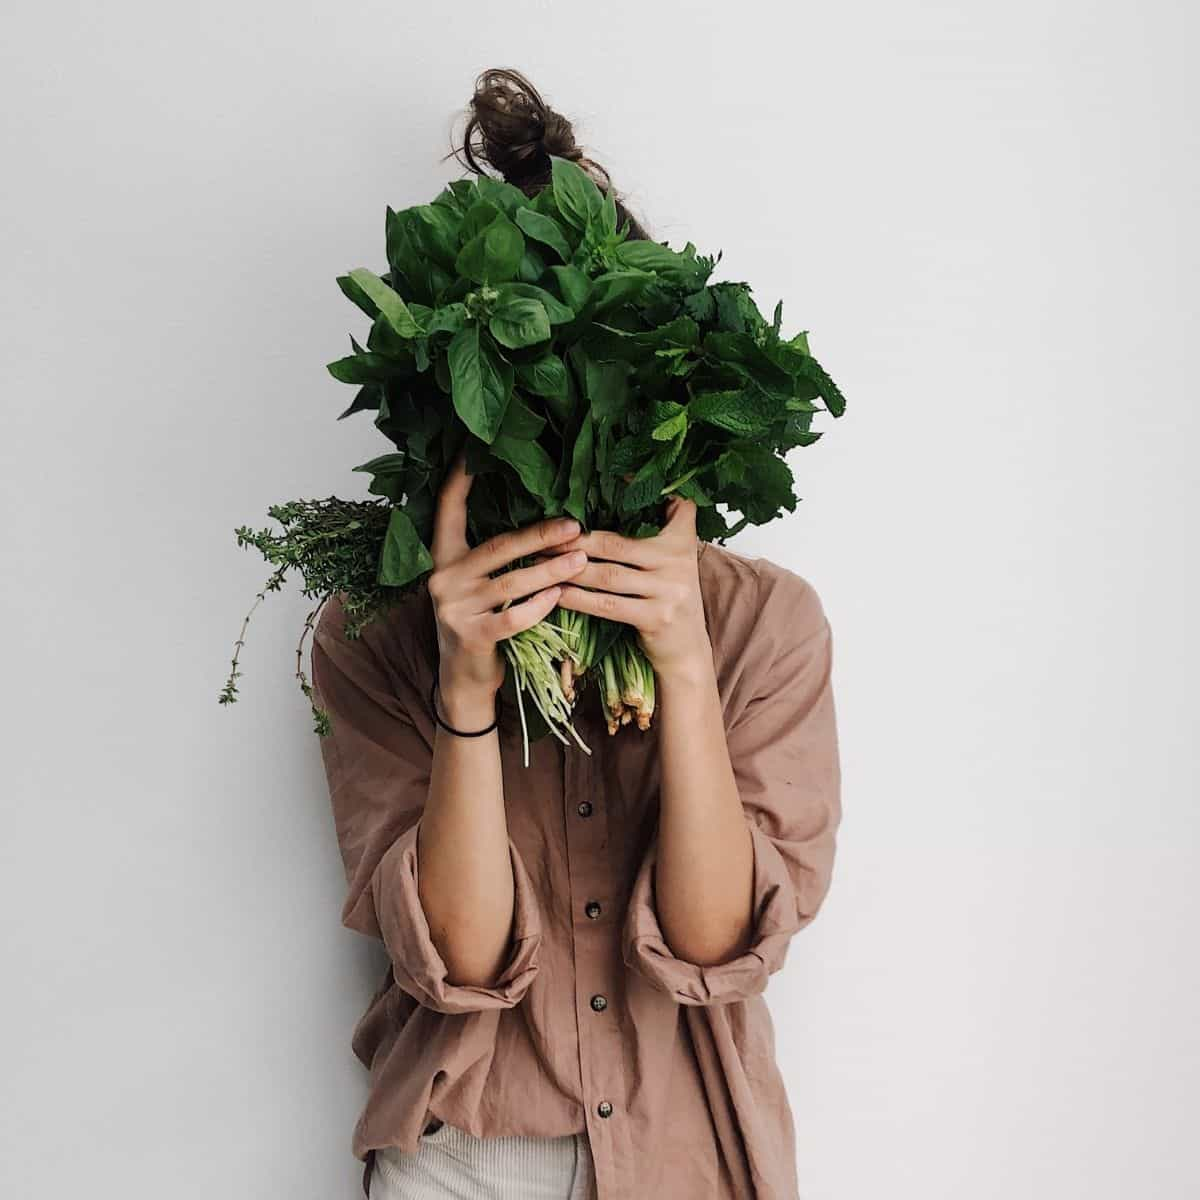 A woman holding leafy green vegetables in front of her face.